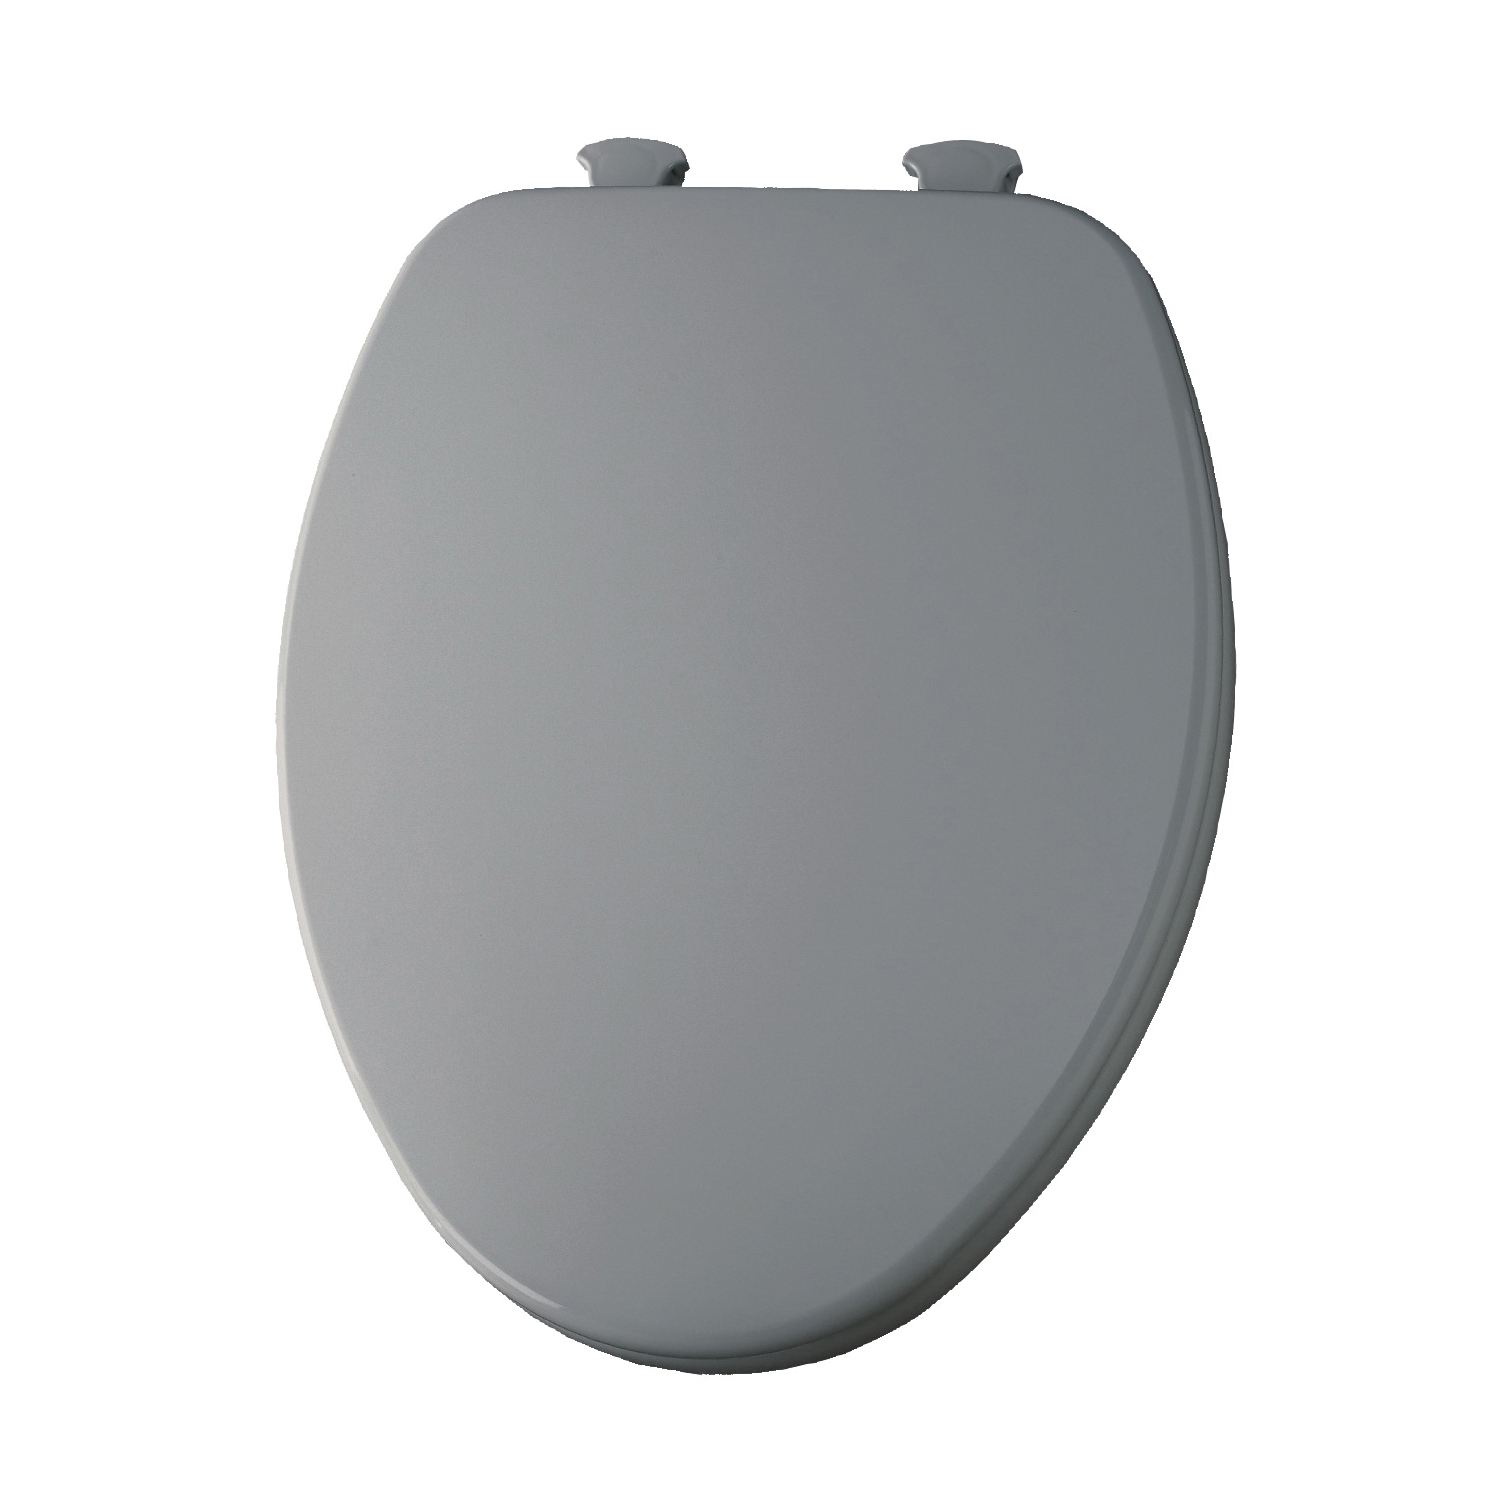 Church® 7F585EC 062 Toilet Seat With Cover, Elongated Bowl, Closed Front, Wood, Ice Gray™, Easy Clean/Change® Hinge